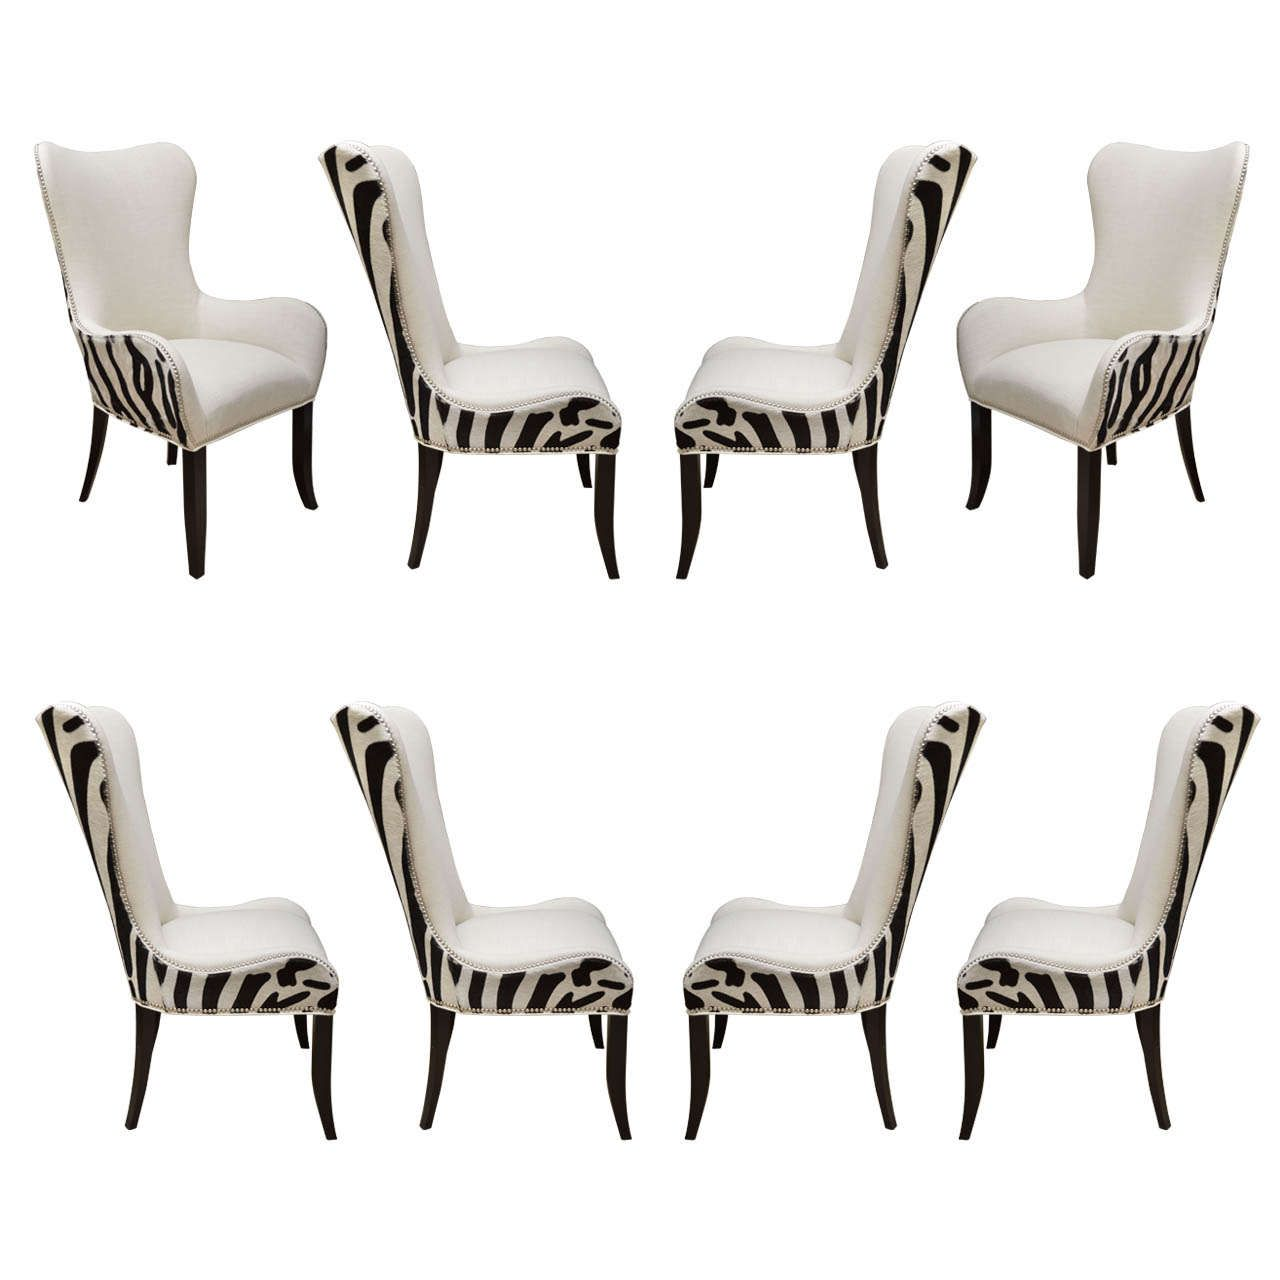 Set of Eight Zebra Stenciled Cowhide Dining Chairs | Dining chairs ...